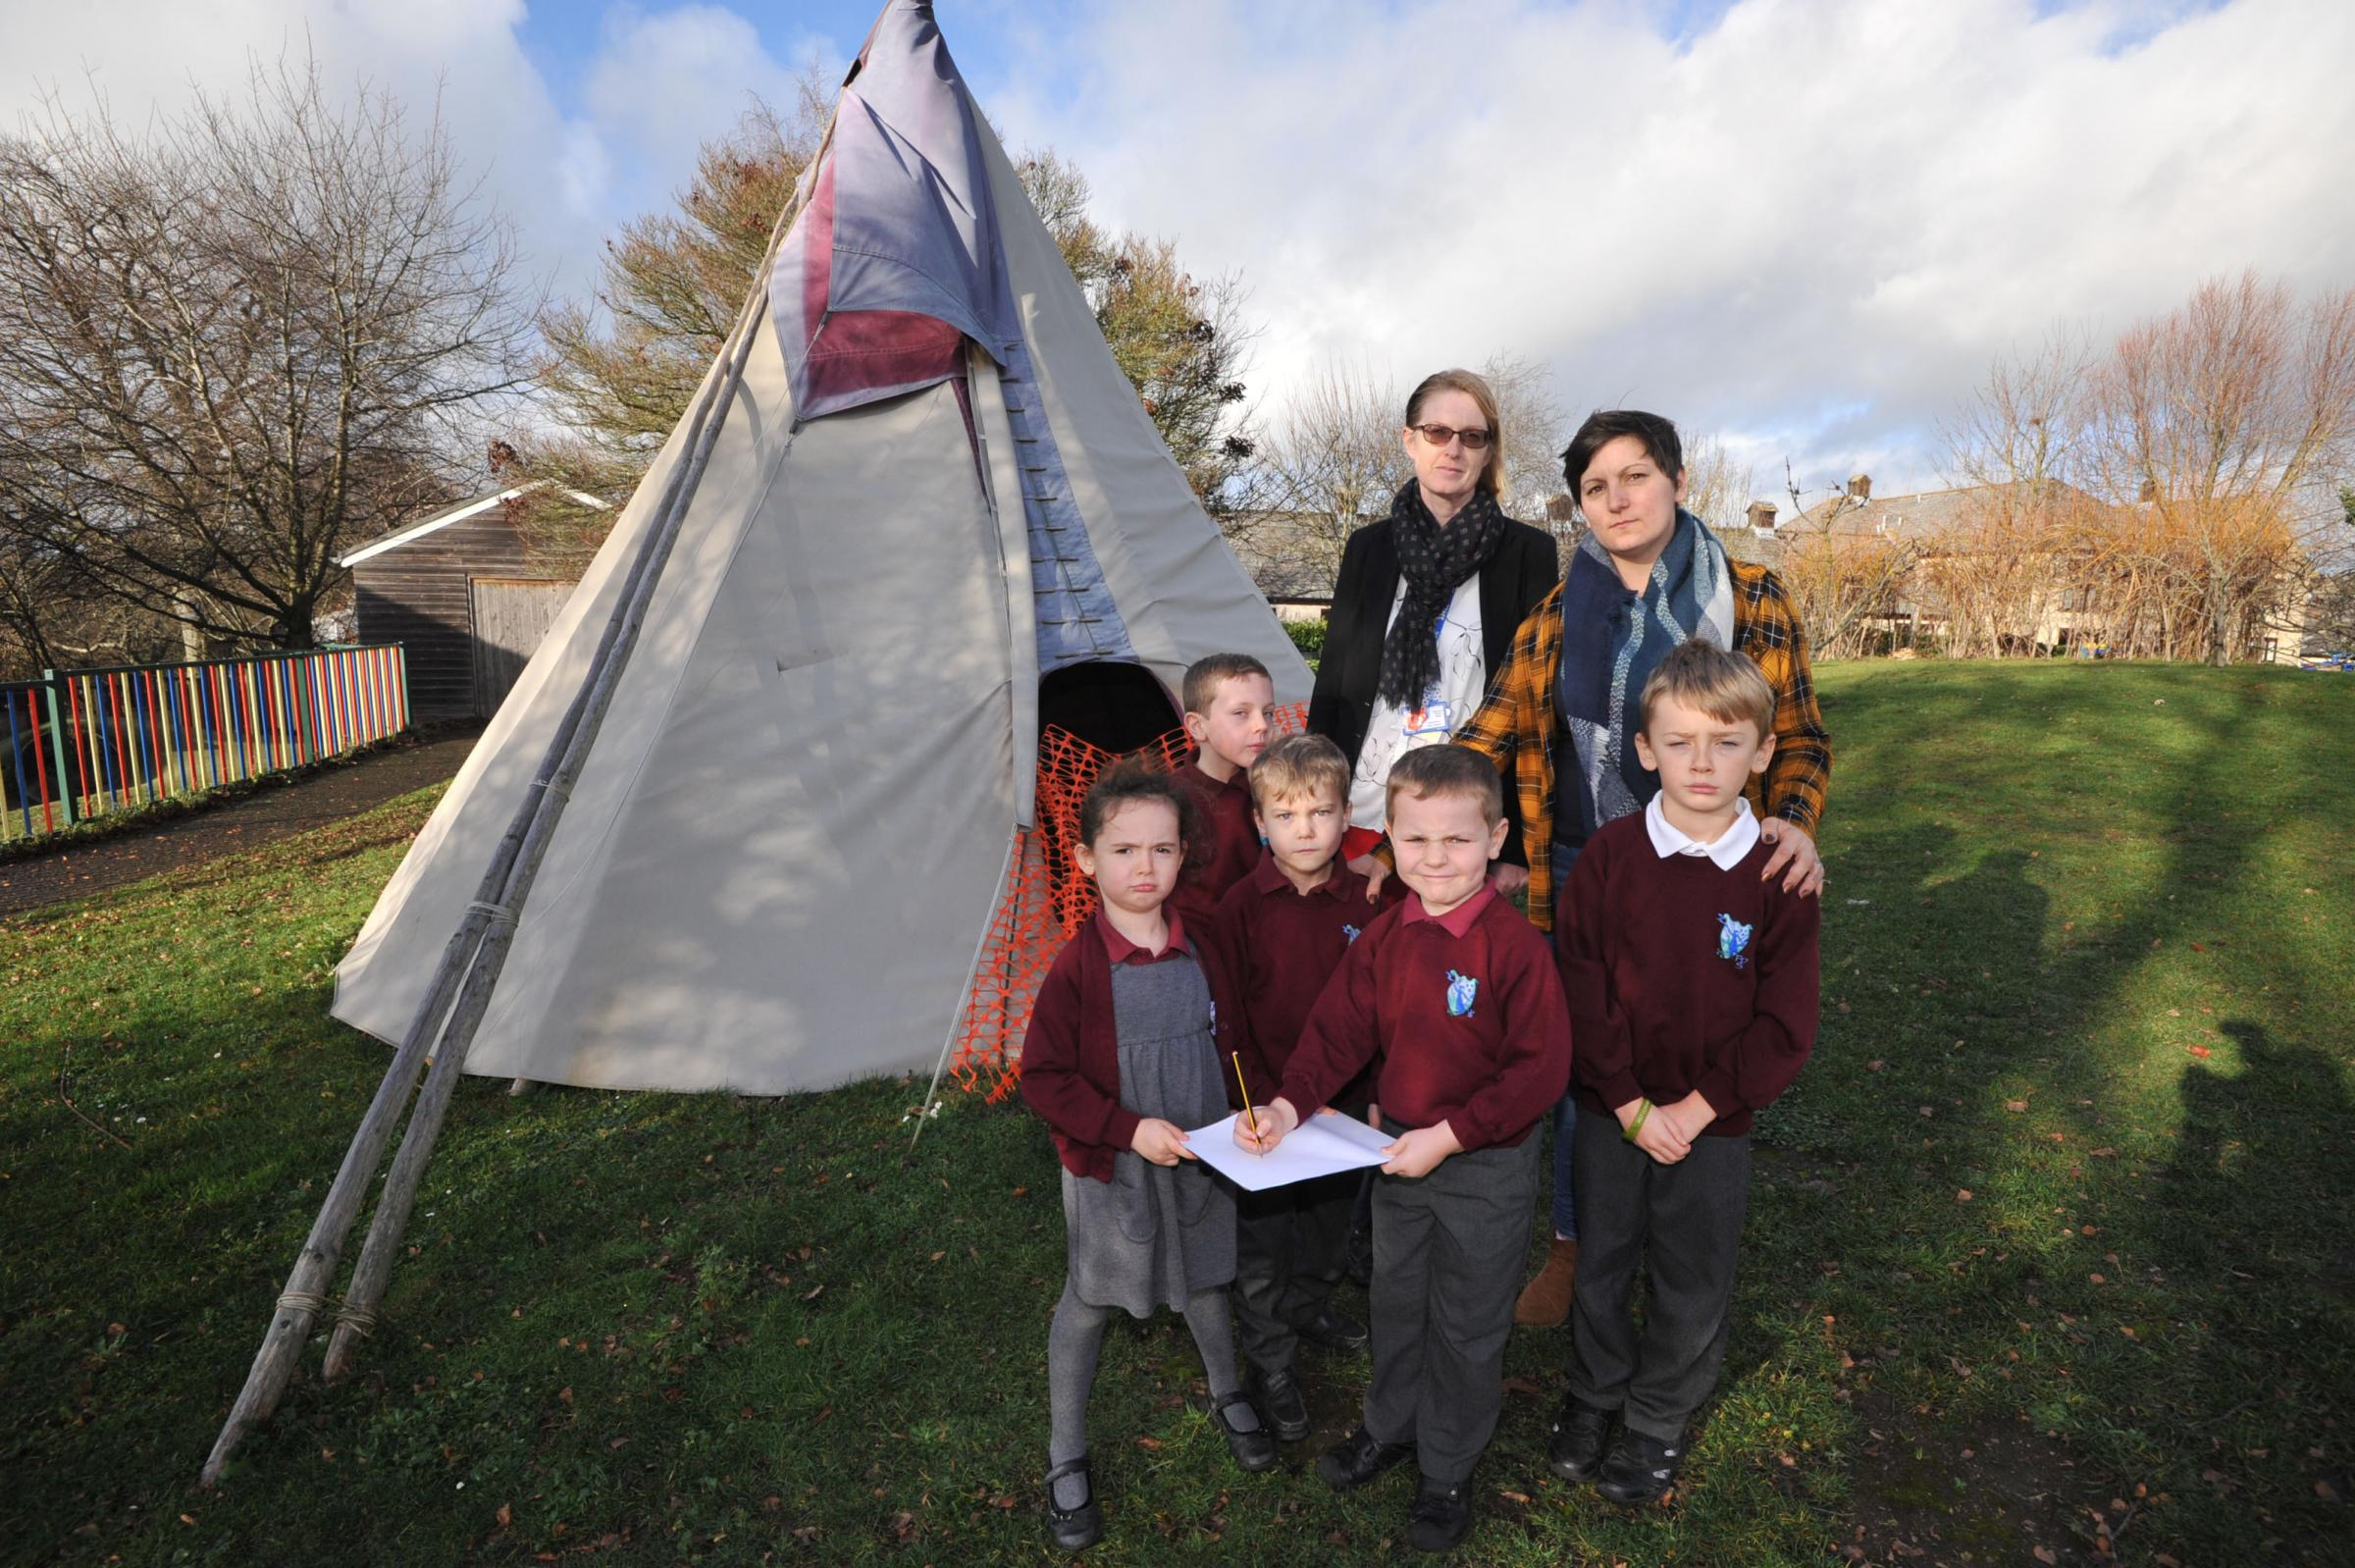 Fitzmaurice Primary School appeal. Head  Tracey Dunn with fund appeal parent Emma  Louise Poursain with pupils Erin,  Lewis, Dylan, Euan and Dennis listing the damage done to the school Teepee. Photo Trevor  60086 1..